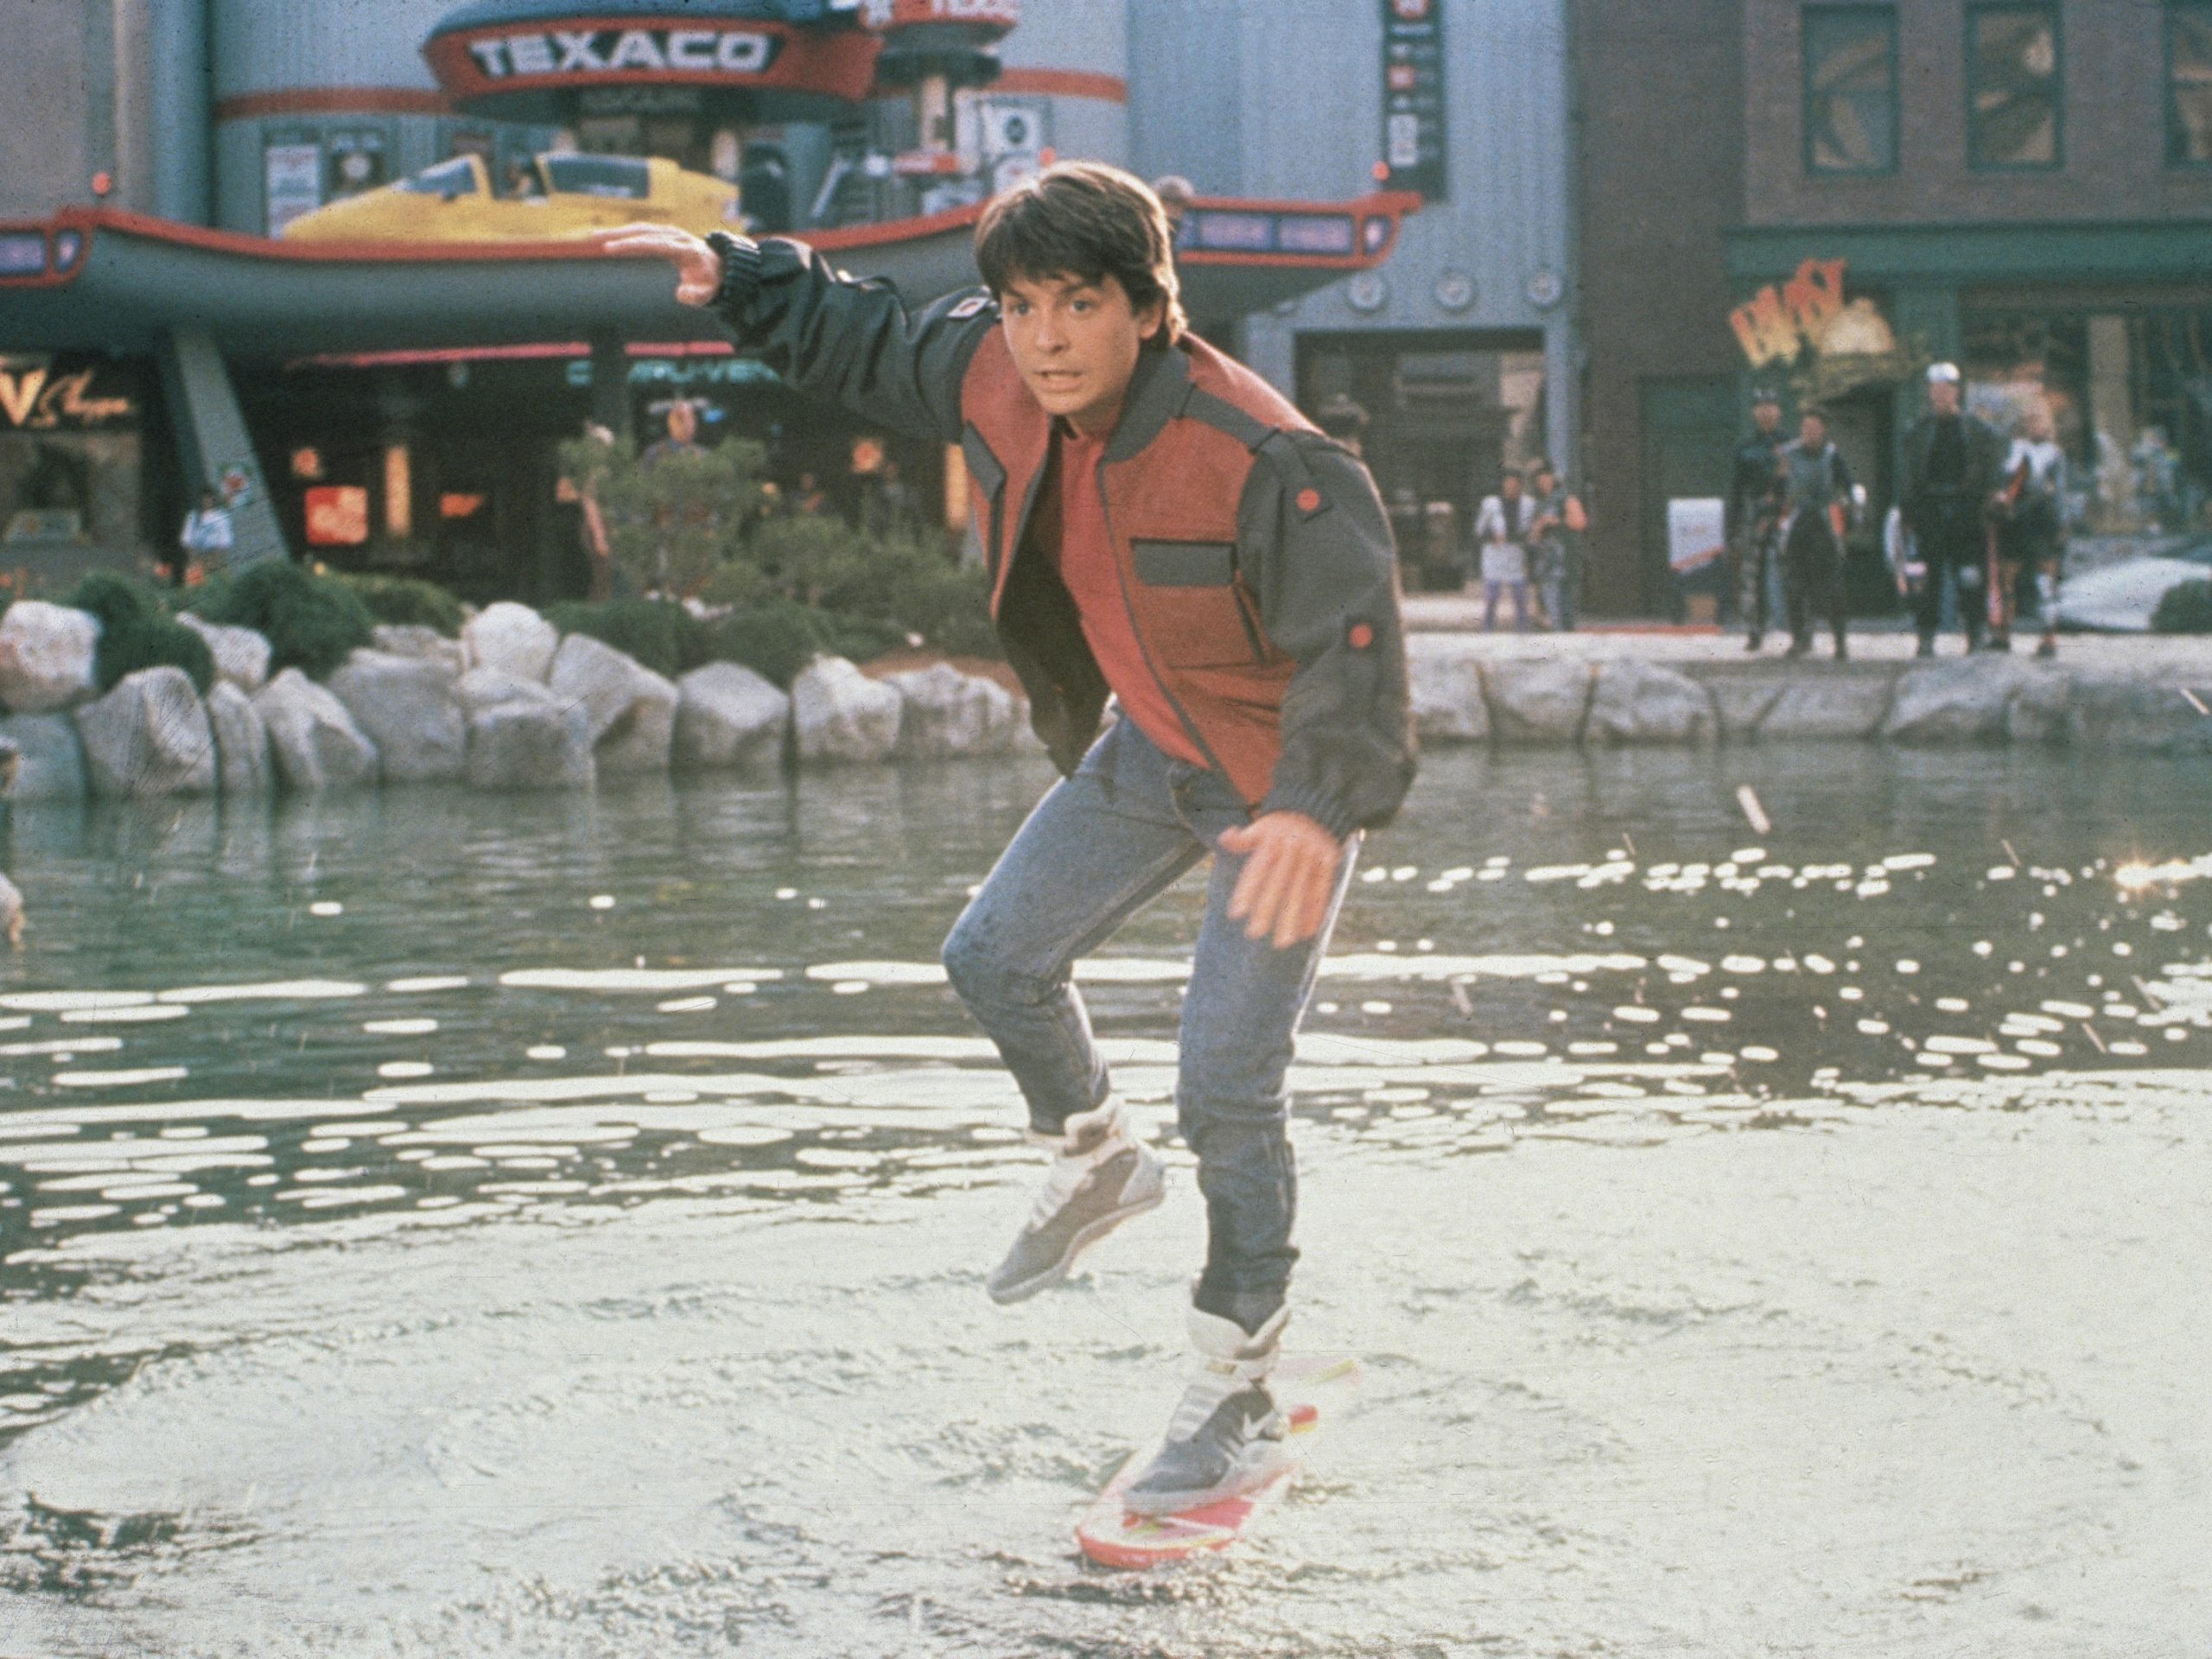 back to the future 2 27c06f9d271e02b5c17b2b544fa8675b5d626a0d scaled 20 Fascinating Futuristic Facts About Back to the Future Part II